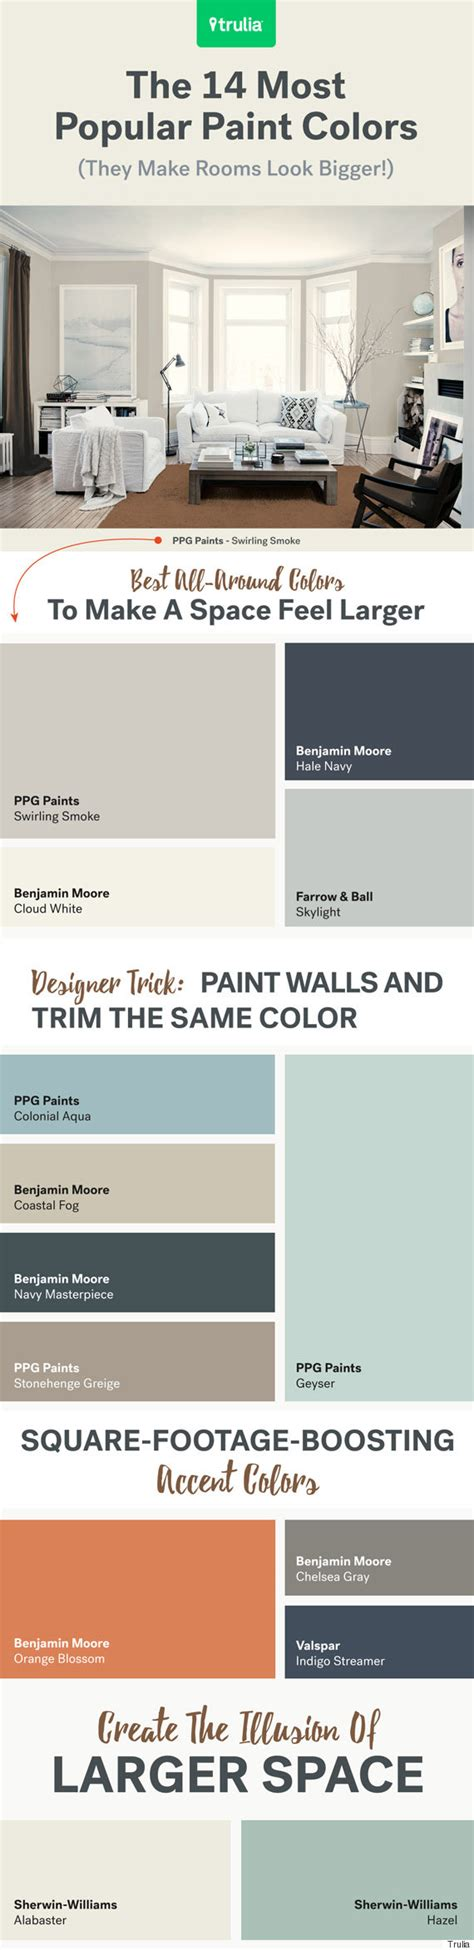 what paint colors make a room look bigger the 14 most popular paint colors they make a room look bigger huffpost